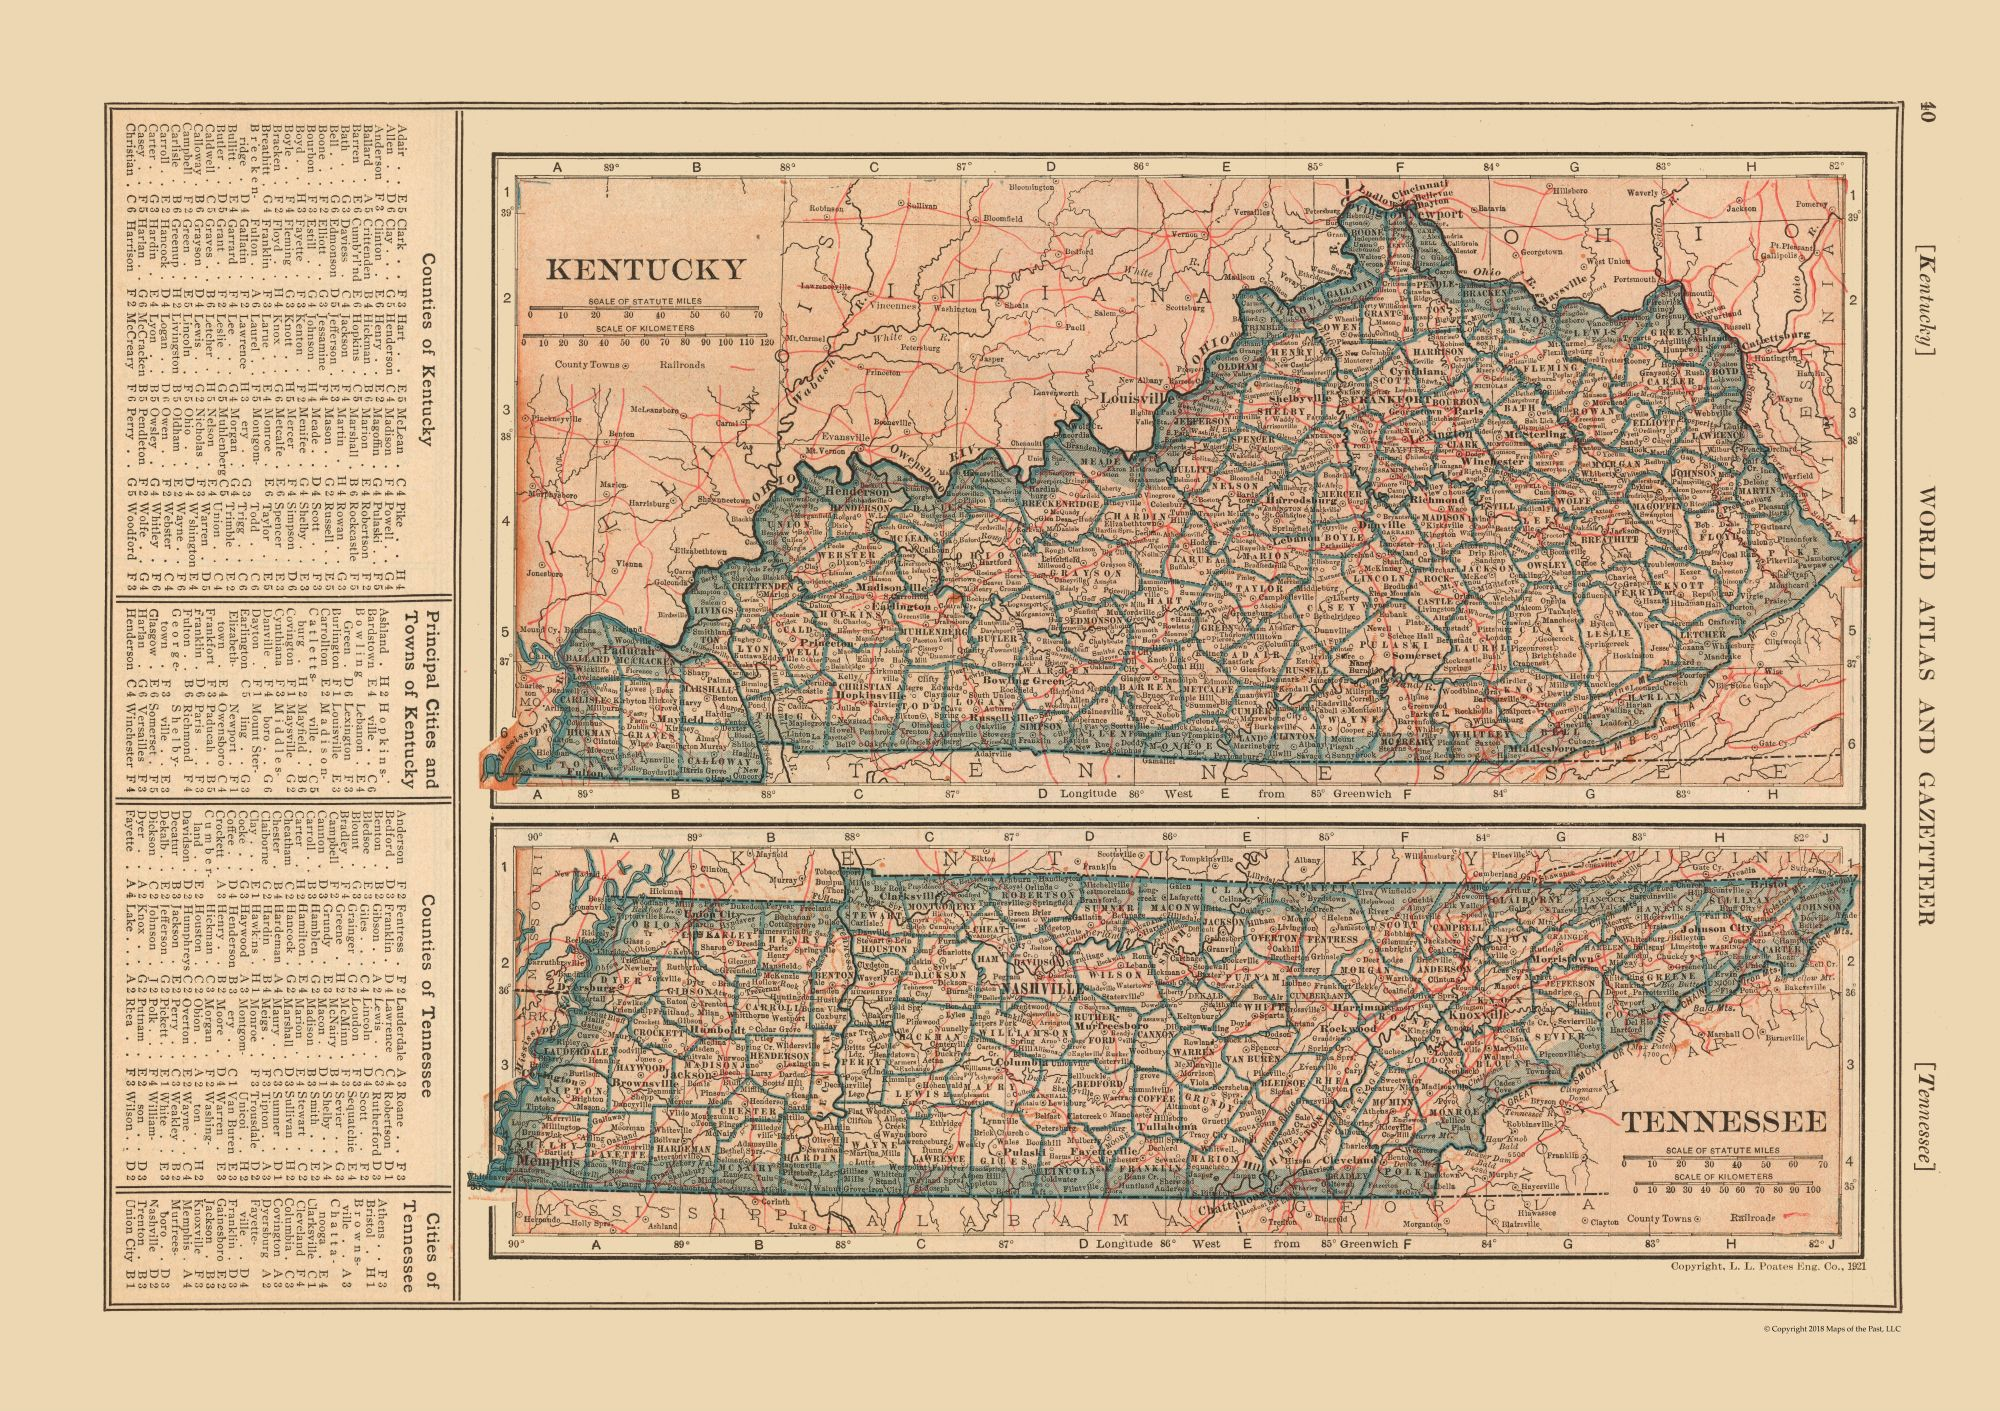 Old State Map - Kentucky - Tennessee - Reynold 1921 - 32.59 x 23 on kentucky time zone by county, alabama map by county, kentucky co map, memphis map by county, wisconsin map by county, cincinnati map by county, oklahoma map by county, minnesota map by county, kentucky on us map, kentucky county map atlas, kentucky state highways, virginia map by county, indiana map by county, mississippi map by county, iowa map by county, kentucky county map book, utah map by county, ky map by county, washington map by county, tennessee map by county,